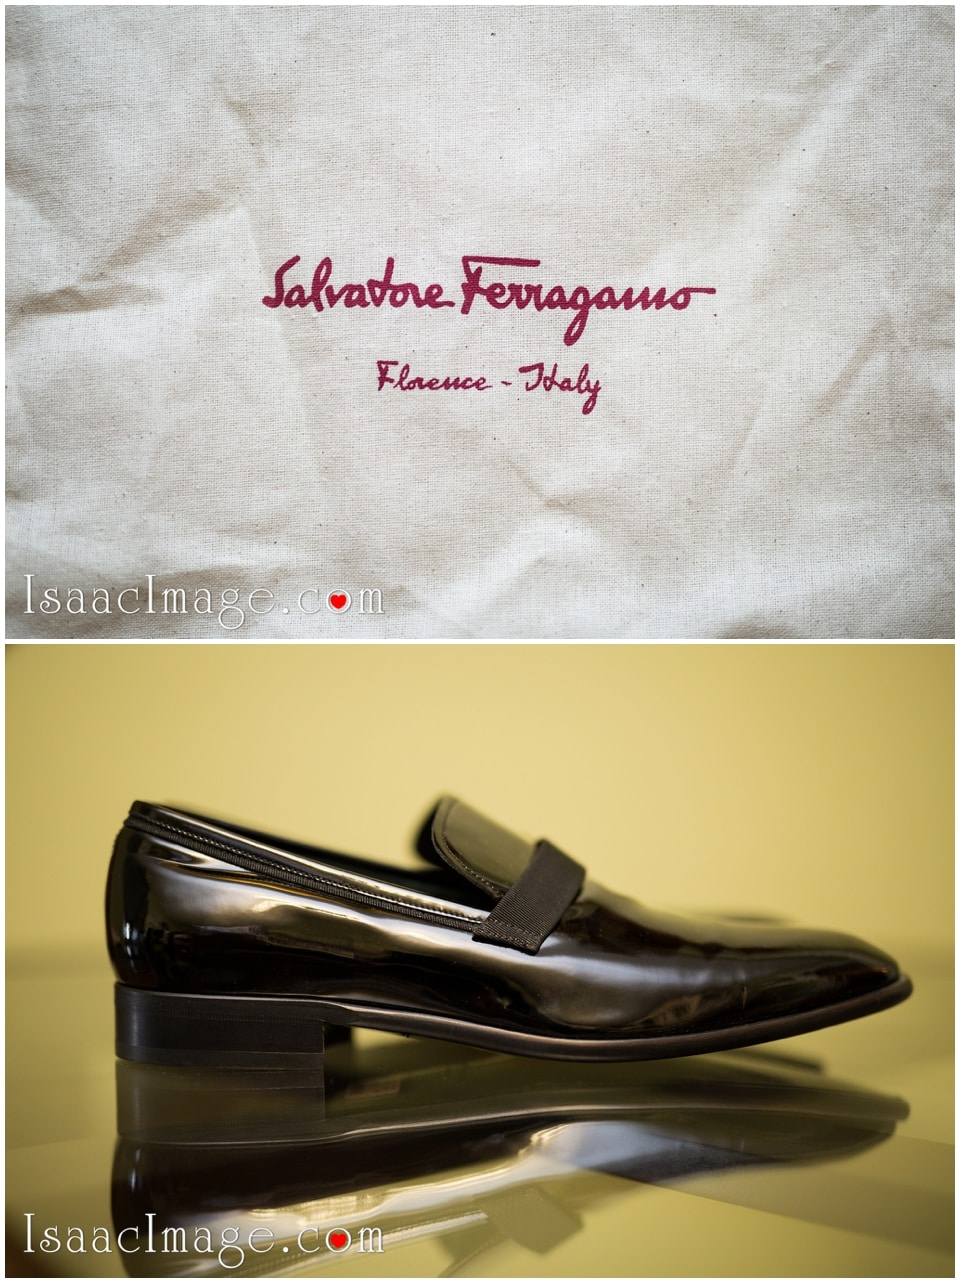 Salvatore Ferragamo Groom's shoes